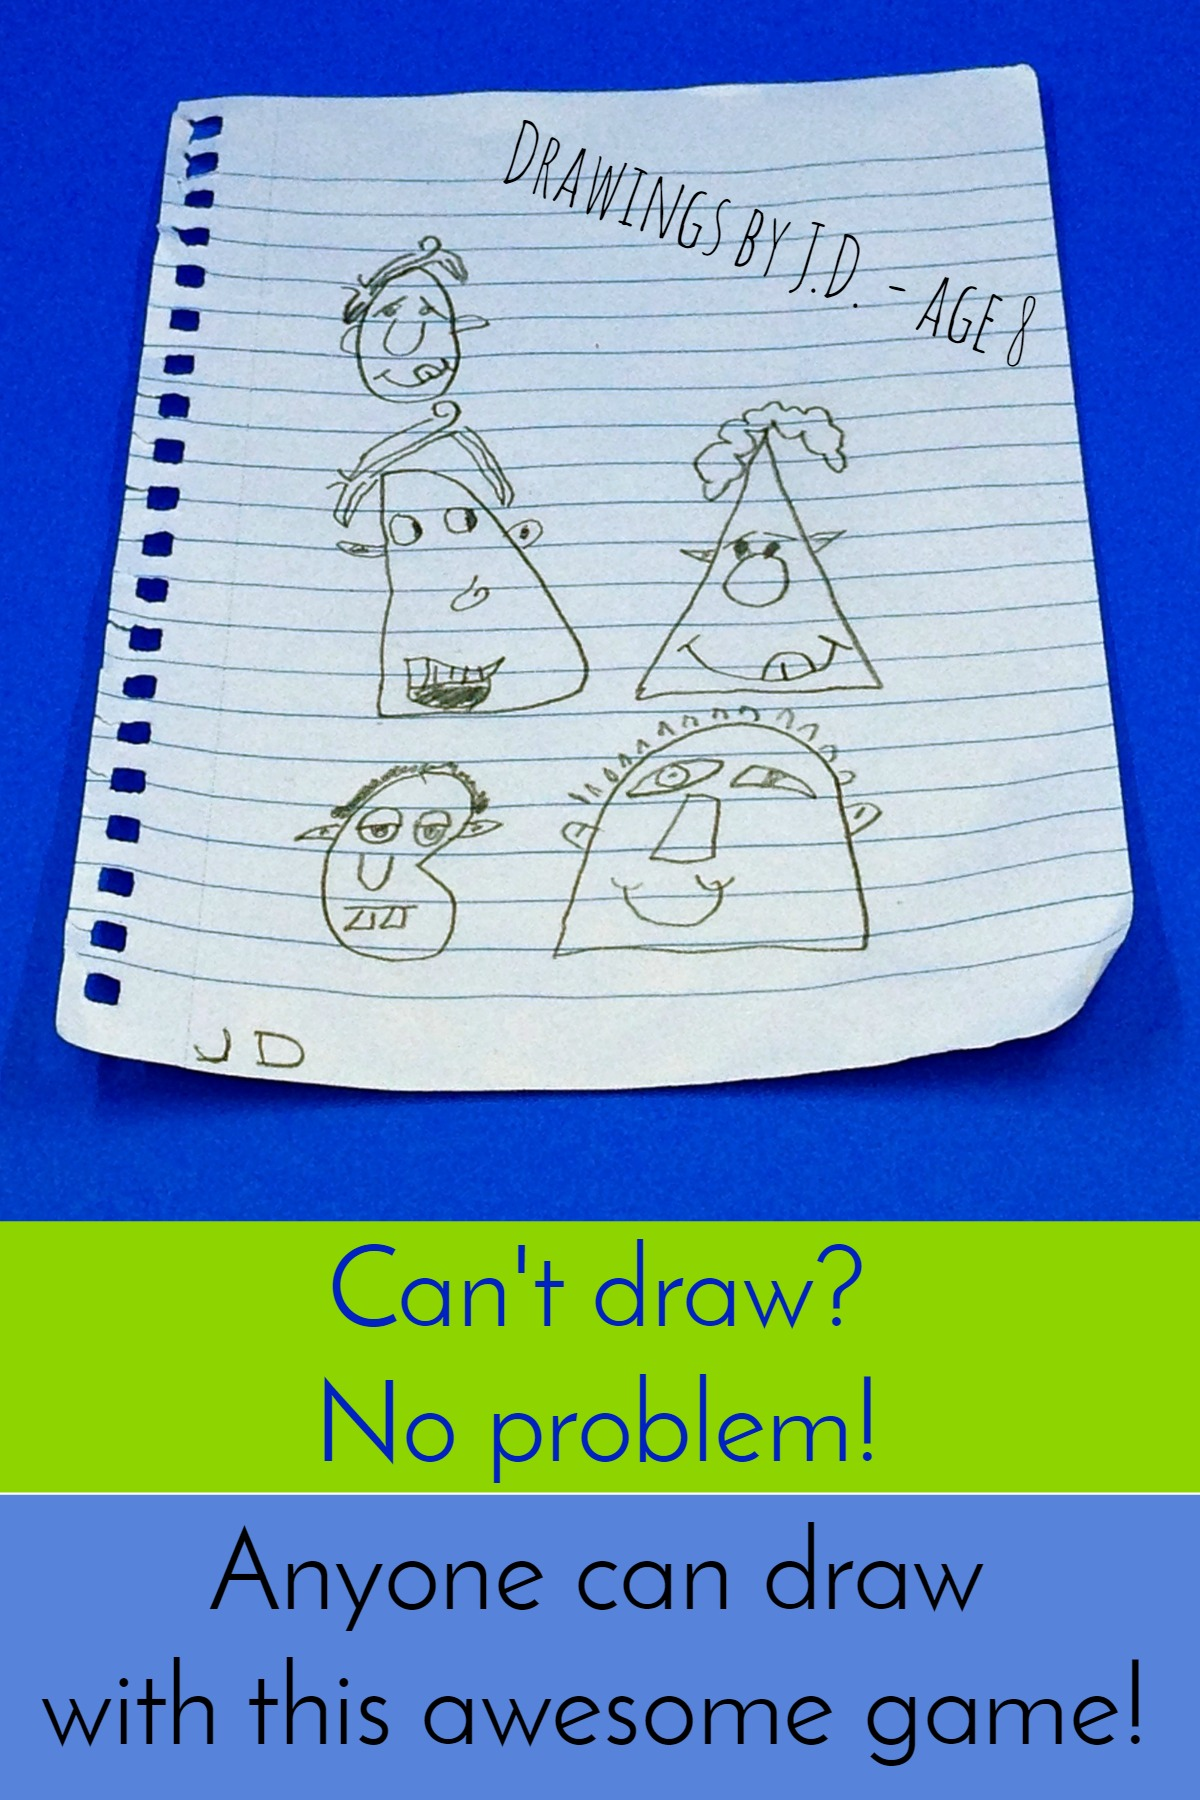 Anyone can draw with this simple and fun game!